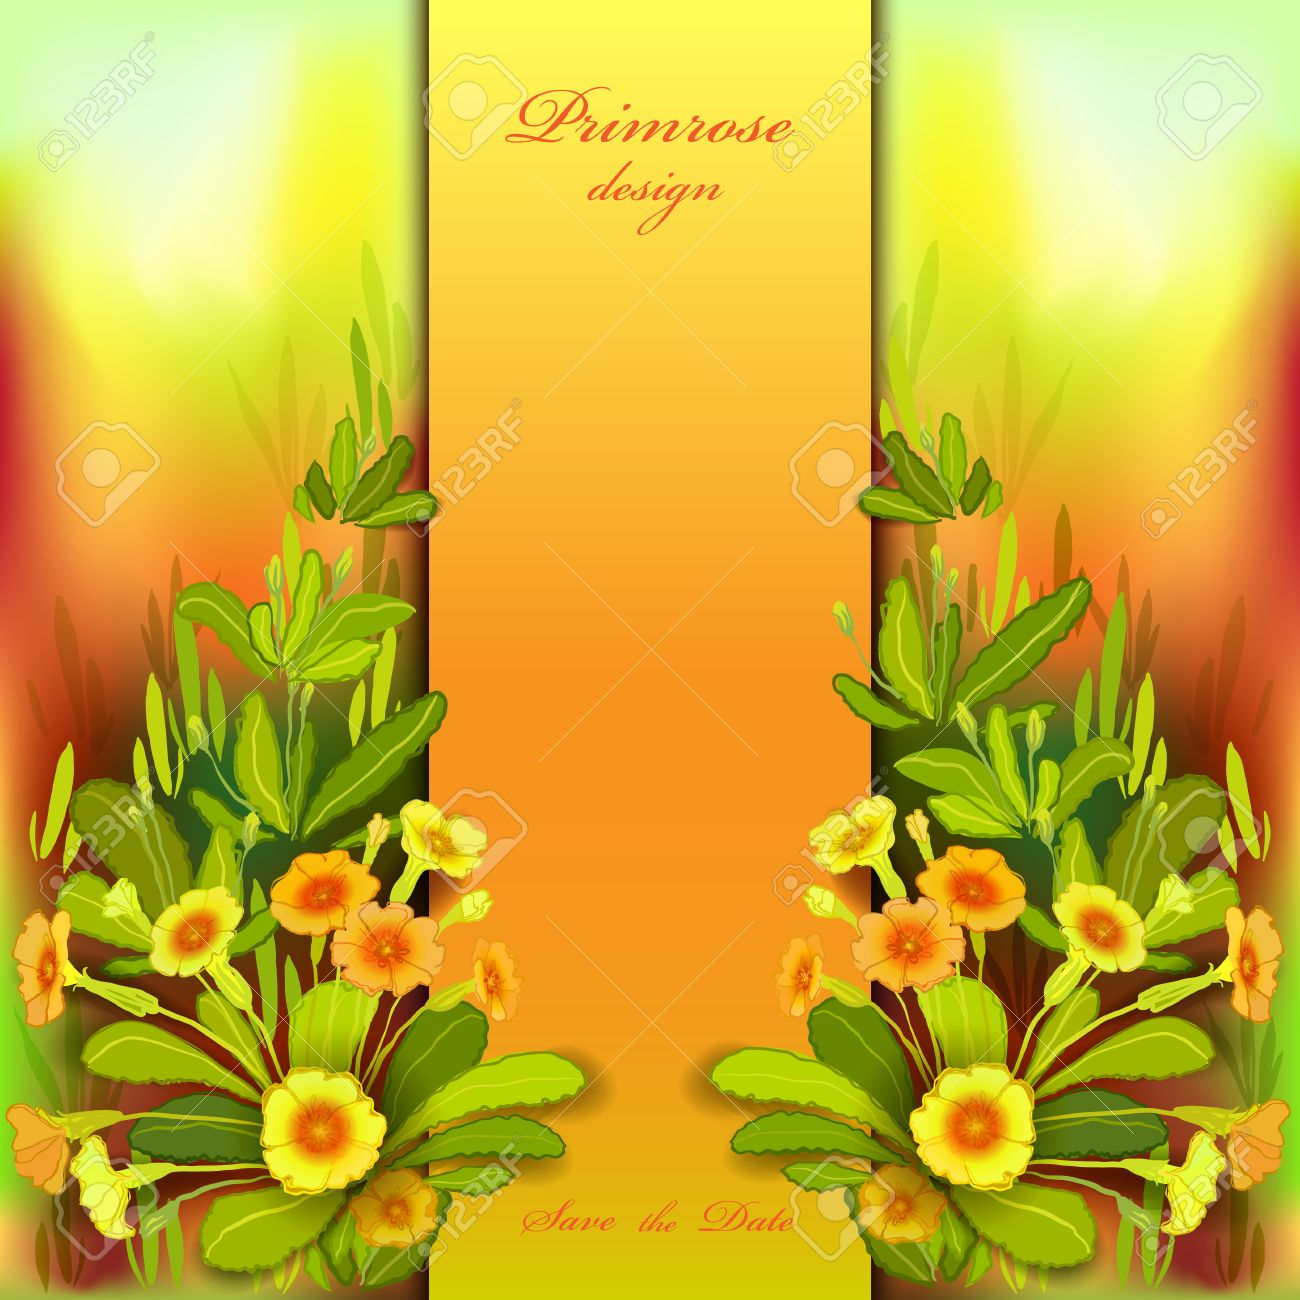 Spring Summer Flowers Floral Background Vertical Border Frame With Yellow Primroses And Green Leaves